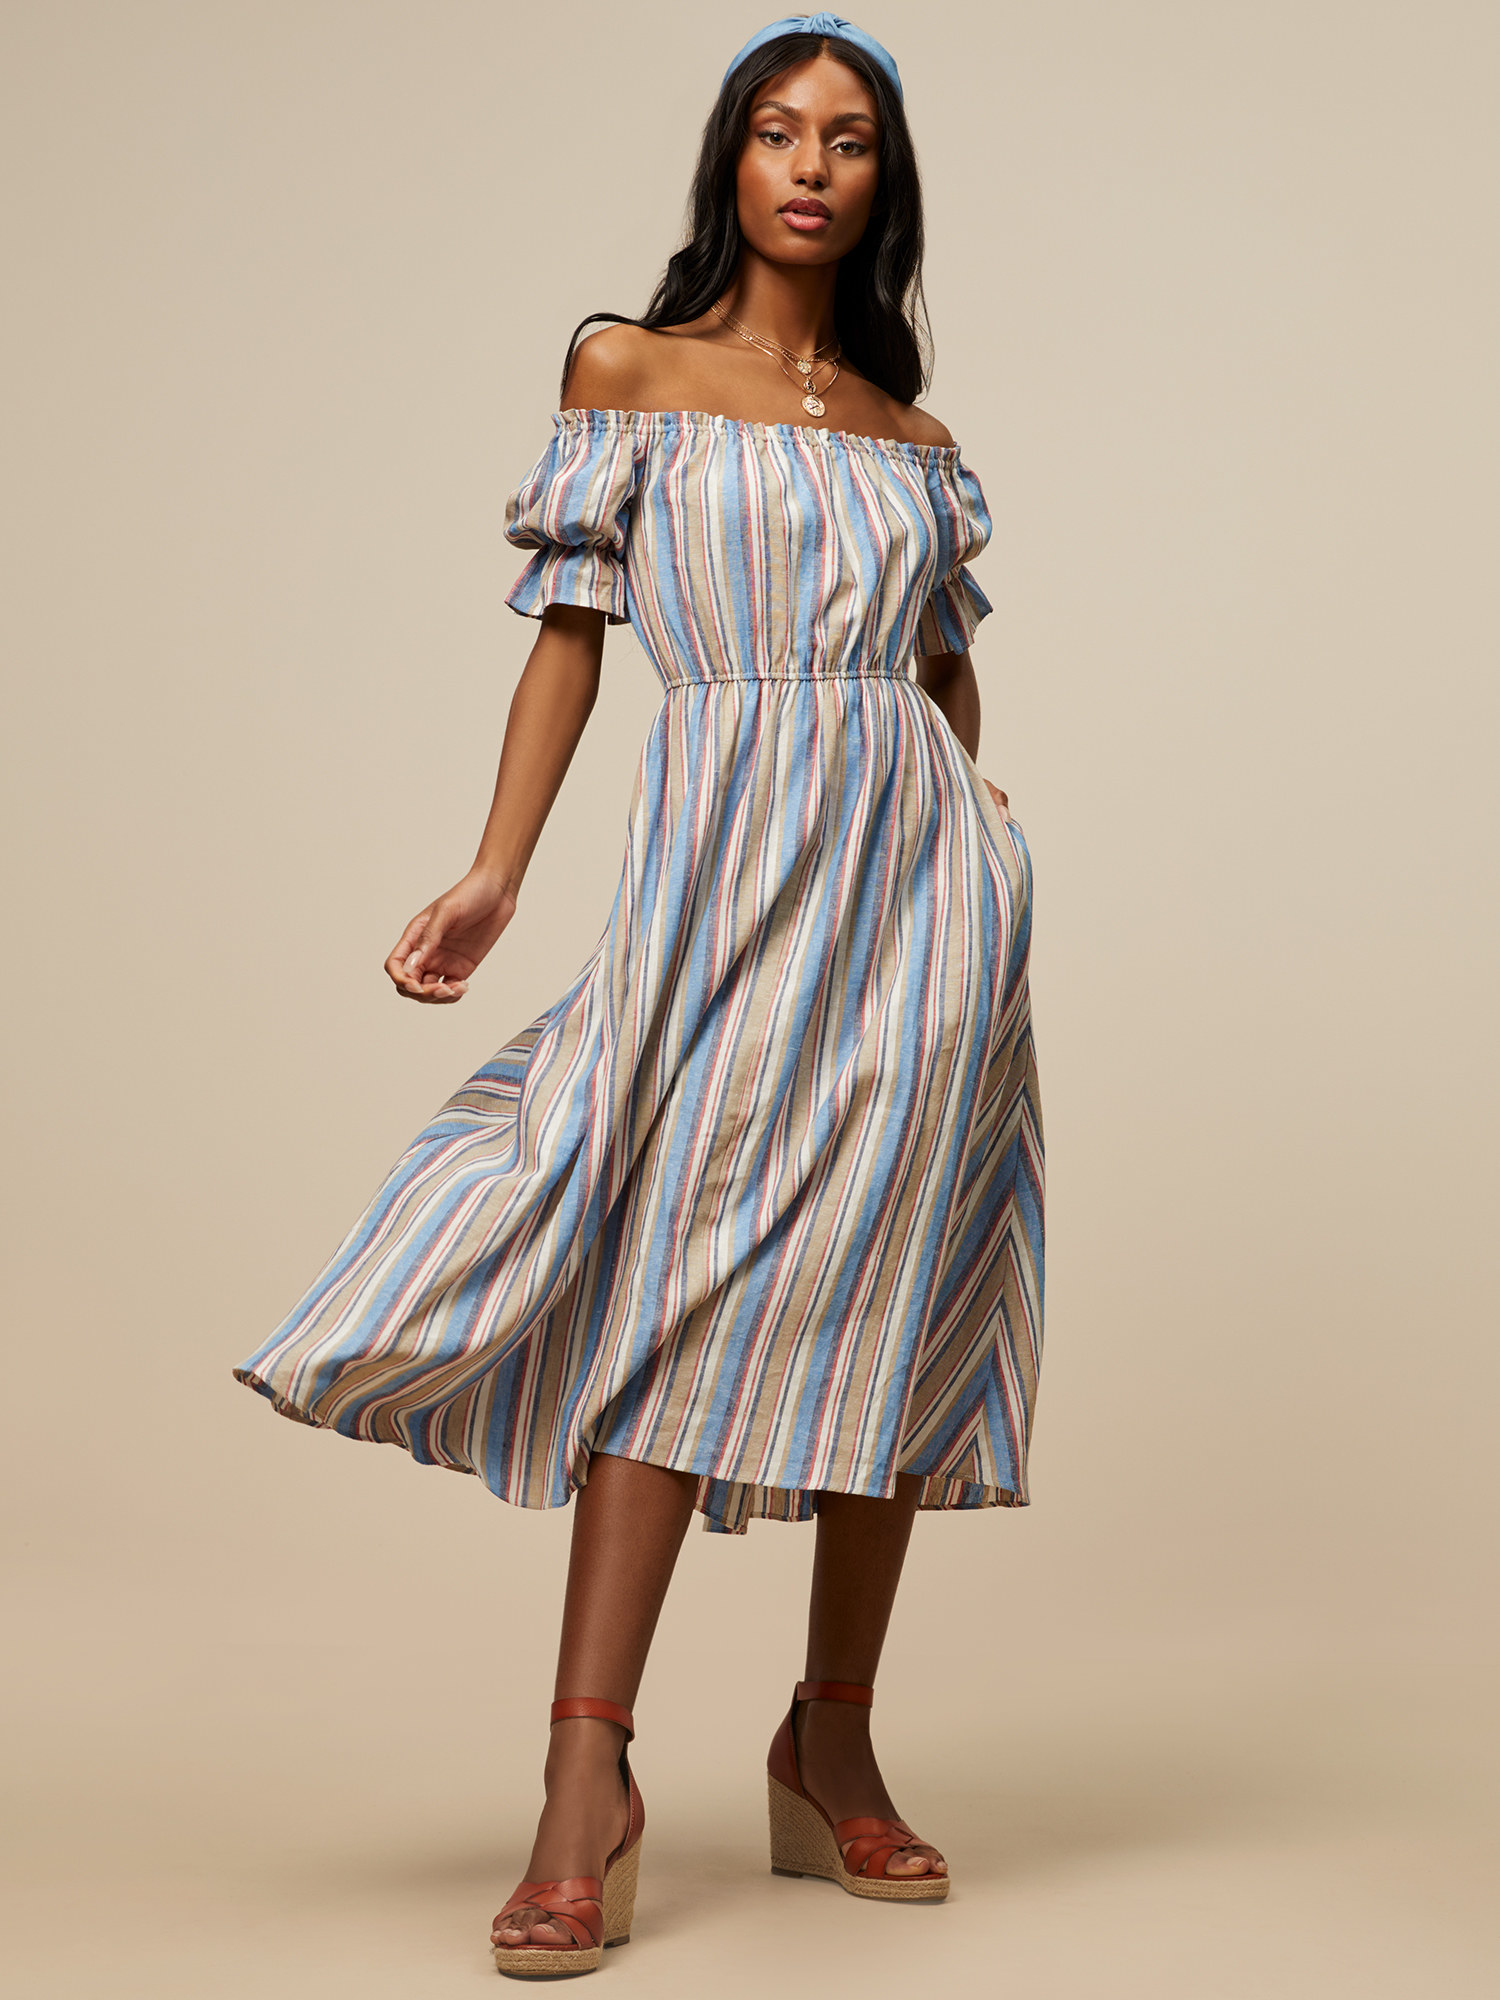 a model in a dress with blue pink and tan vertical stripes